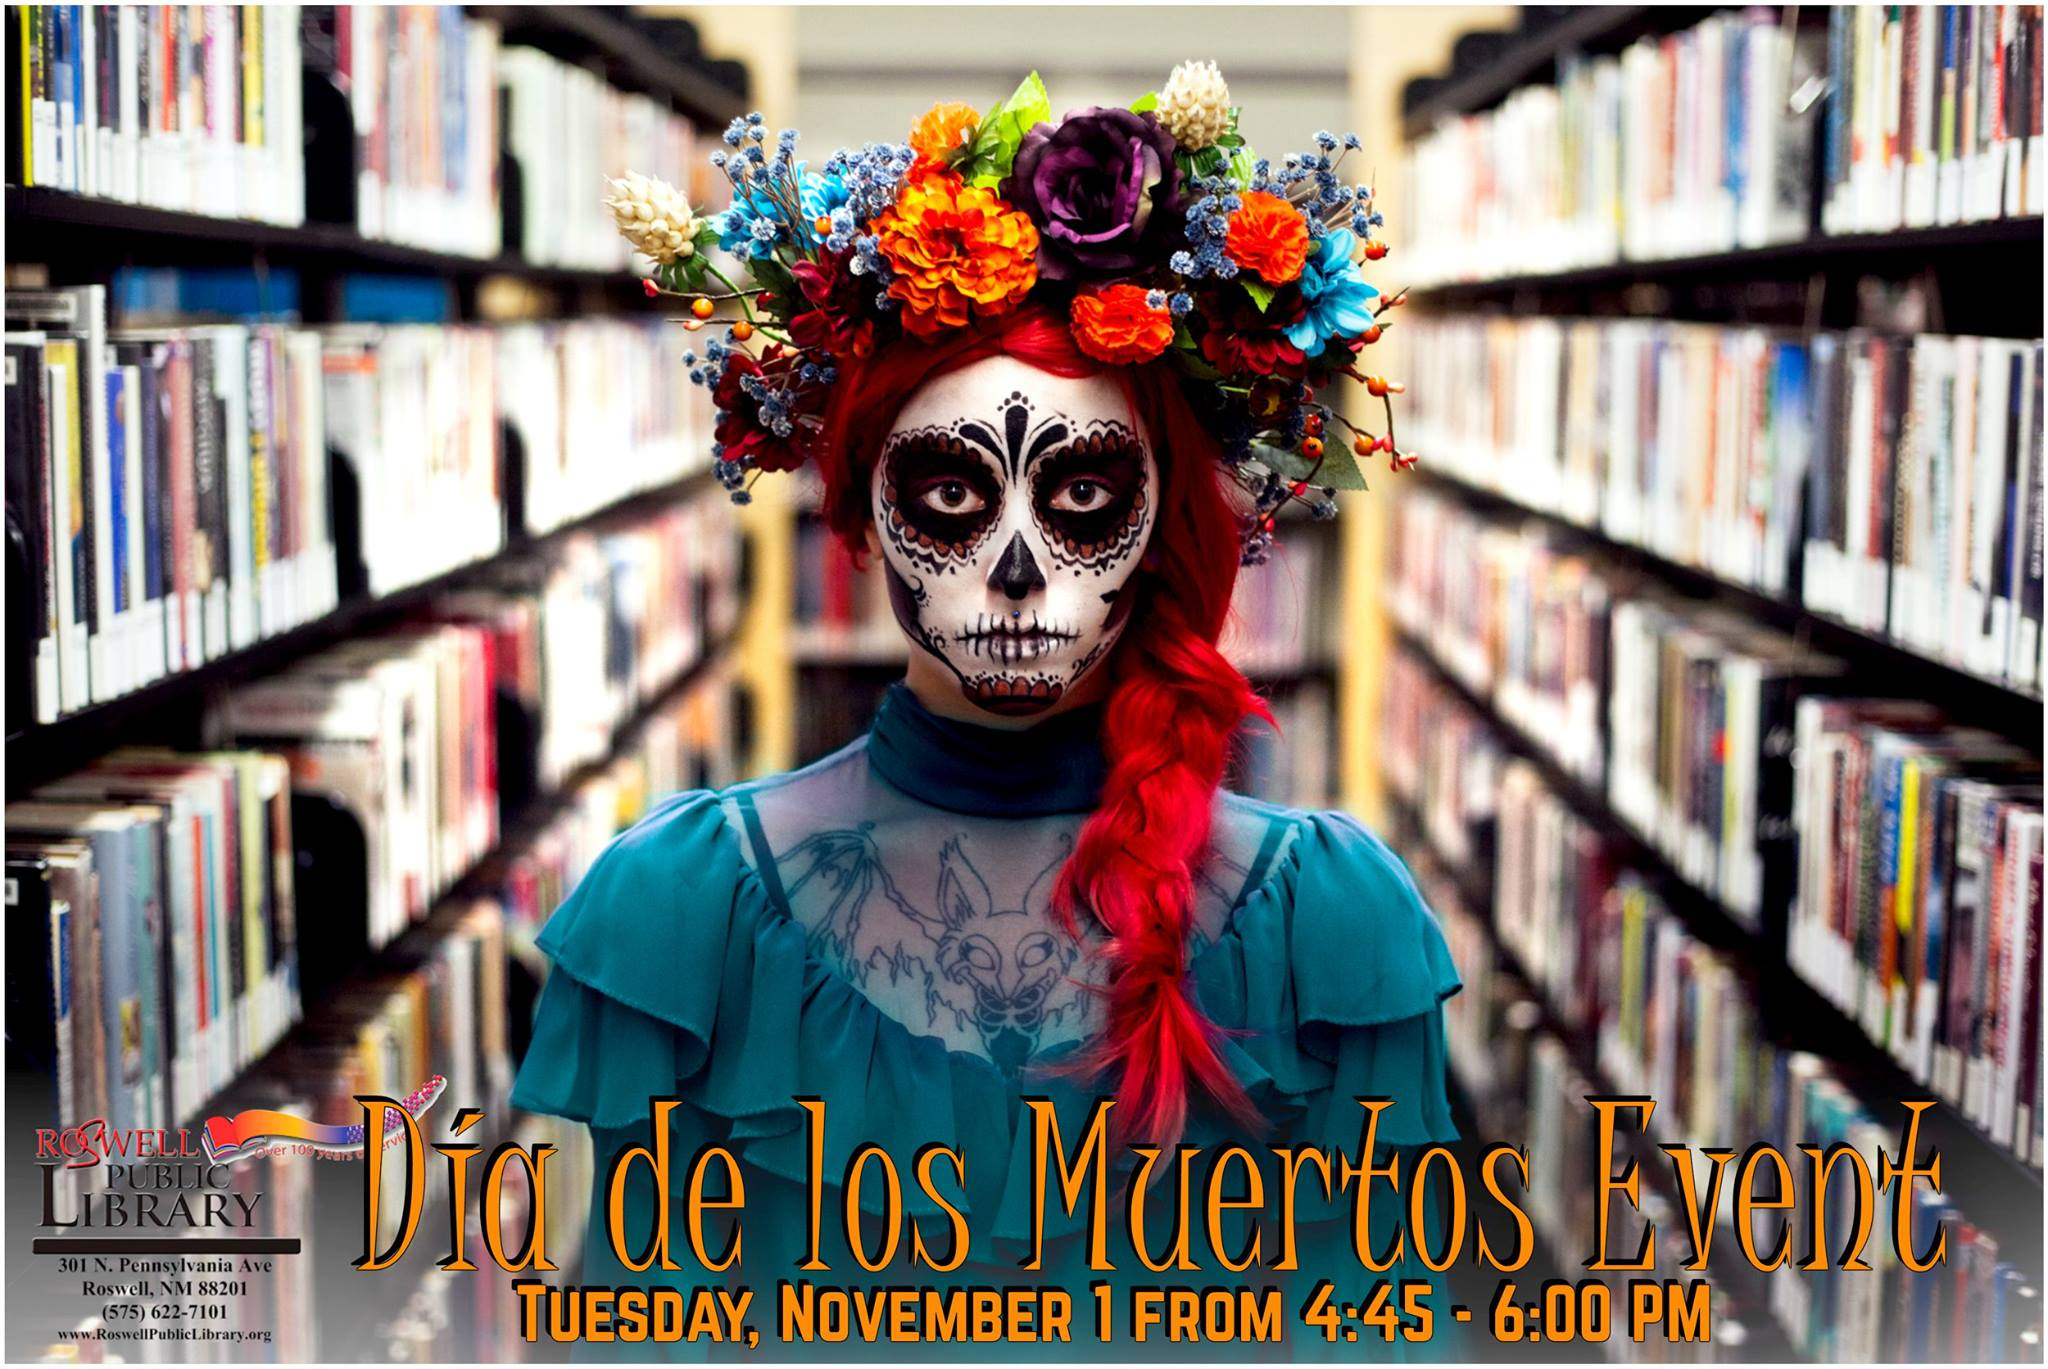 dia de los muertos event at the library